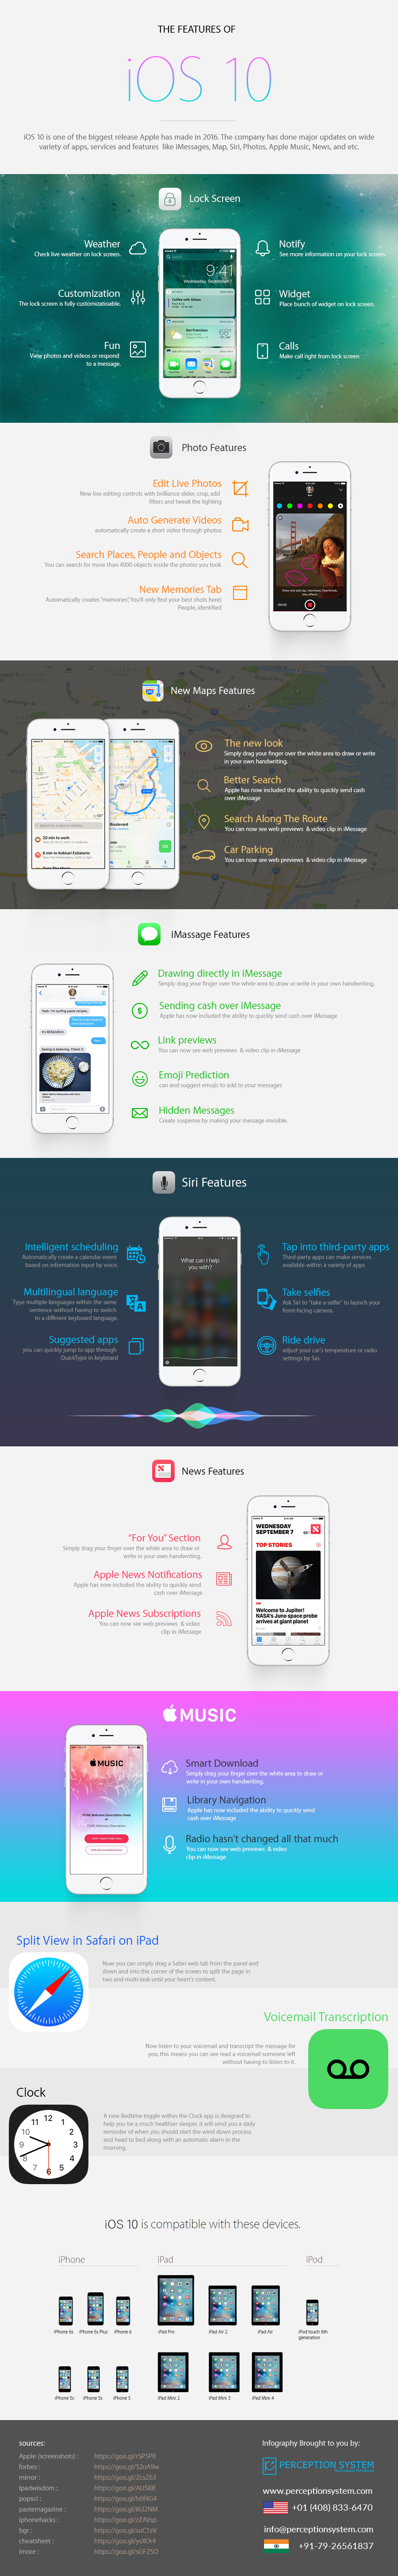 Infographic: Amazing iOS 10 Features Should Know in 3 Minutes - 13374